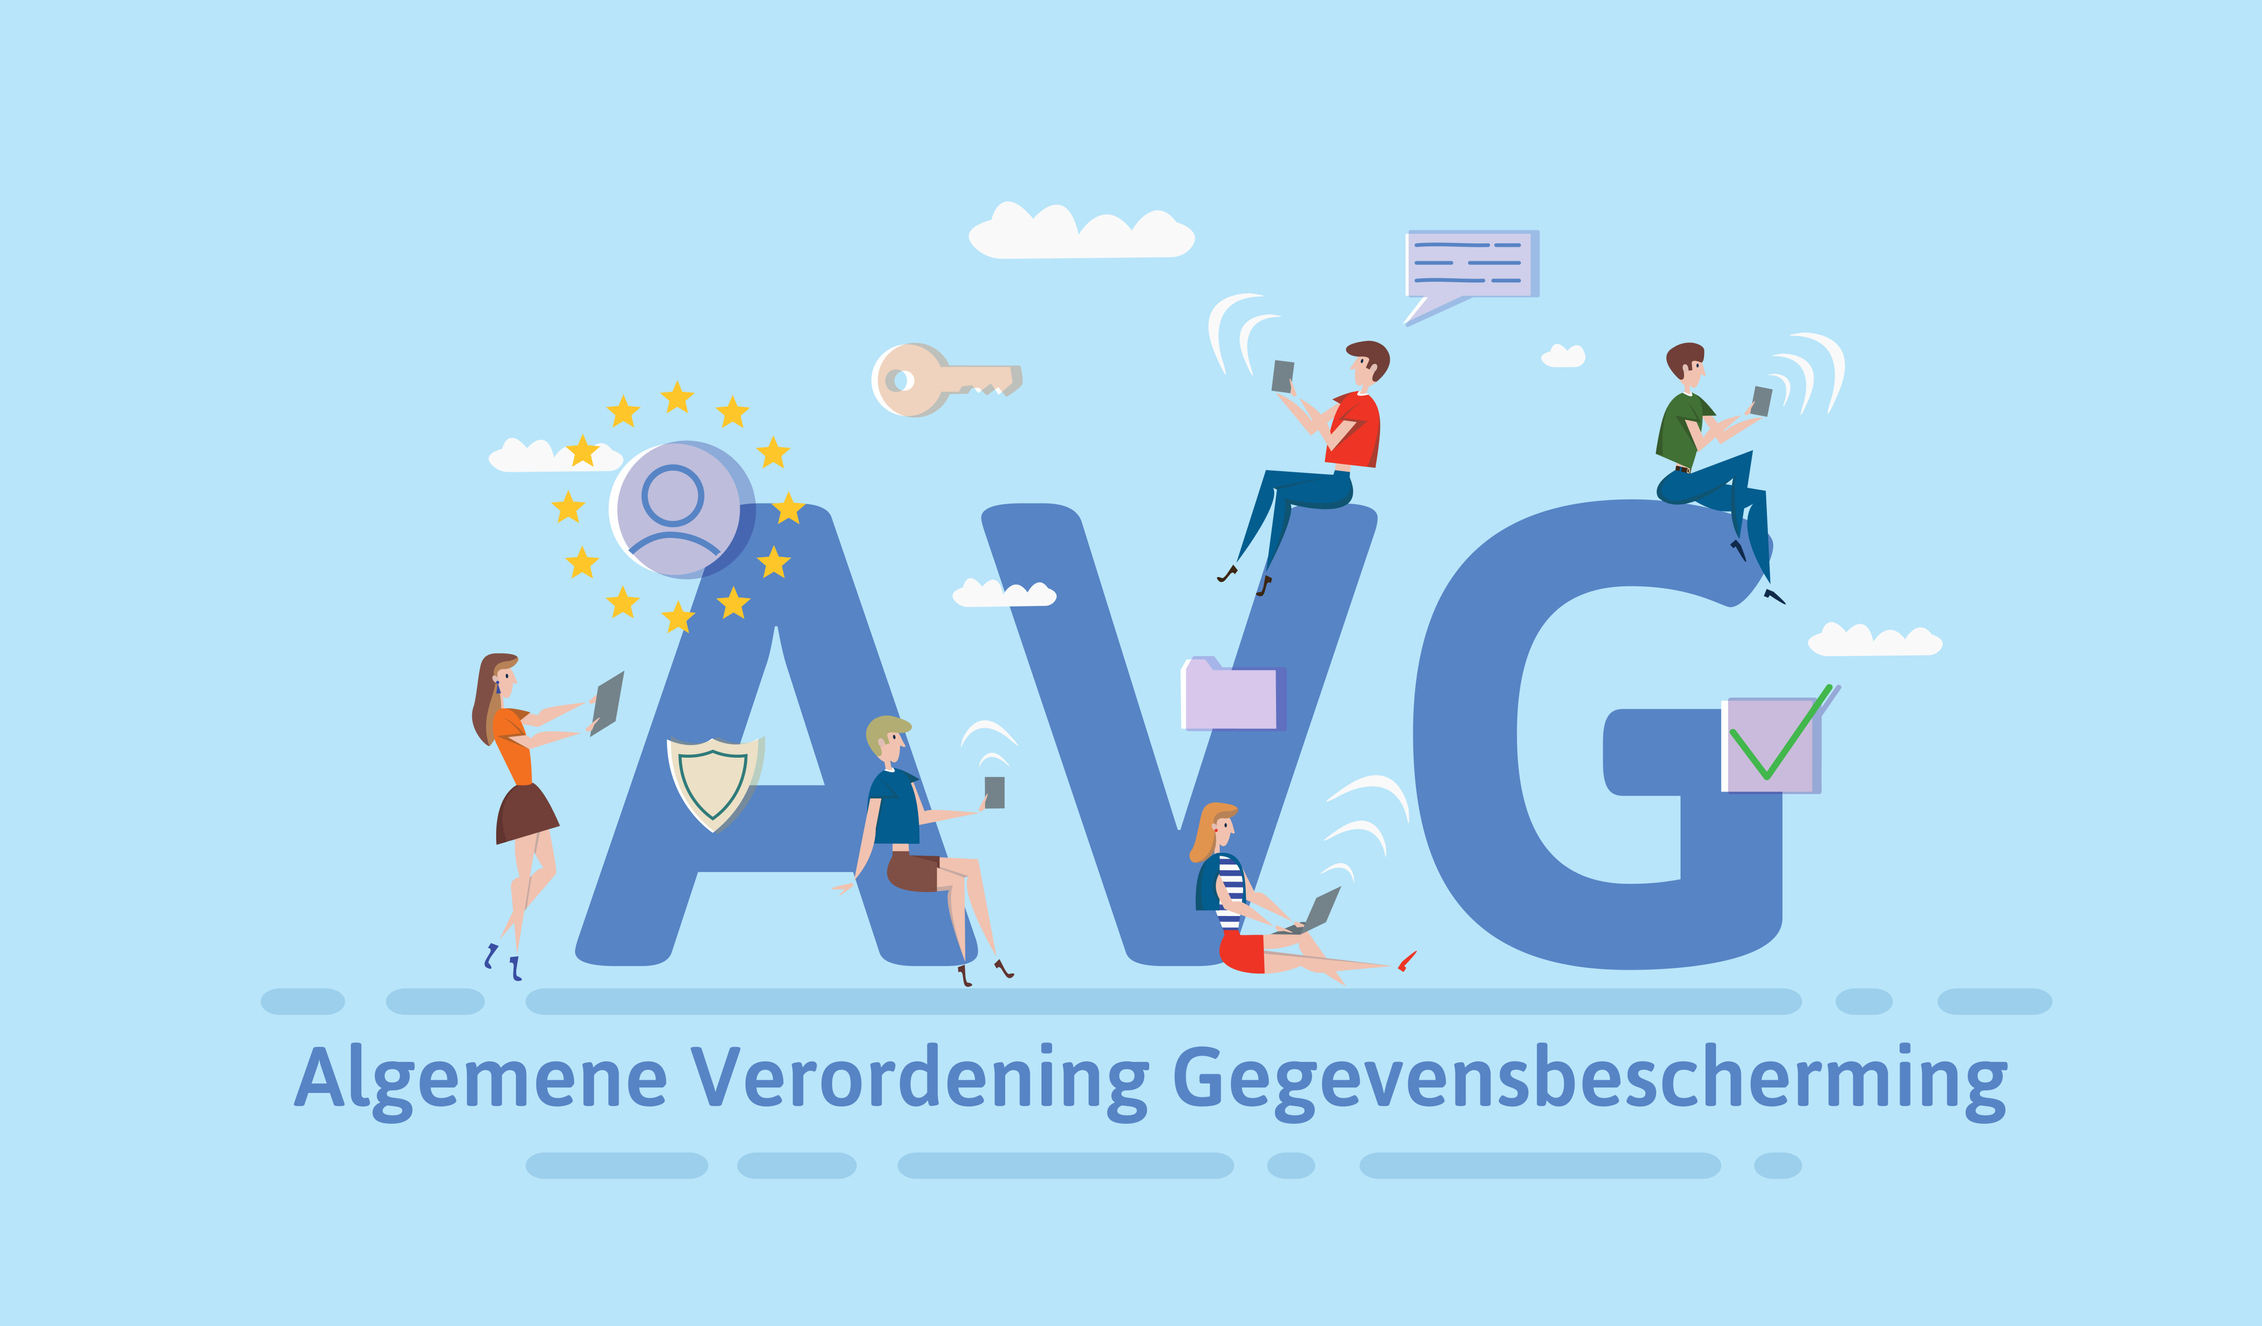 general data protection regulation in netherlands people using mobile gadgets and internet devices among big avg letters gdpr, avg, dsgvo concept vector illustration flat style horizontal